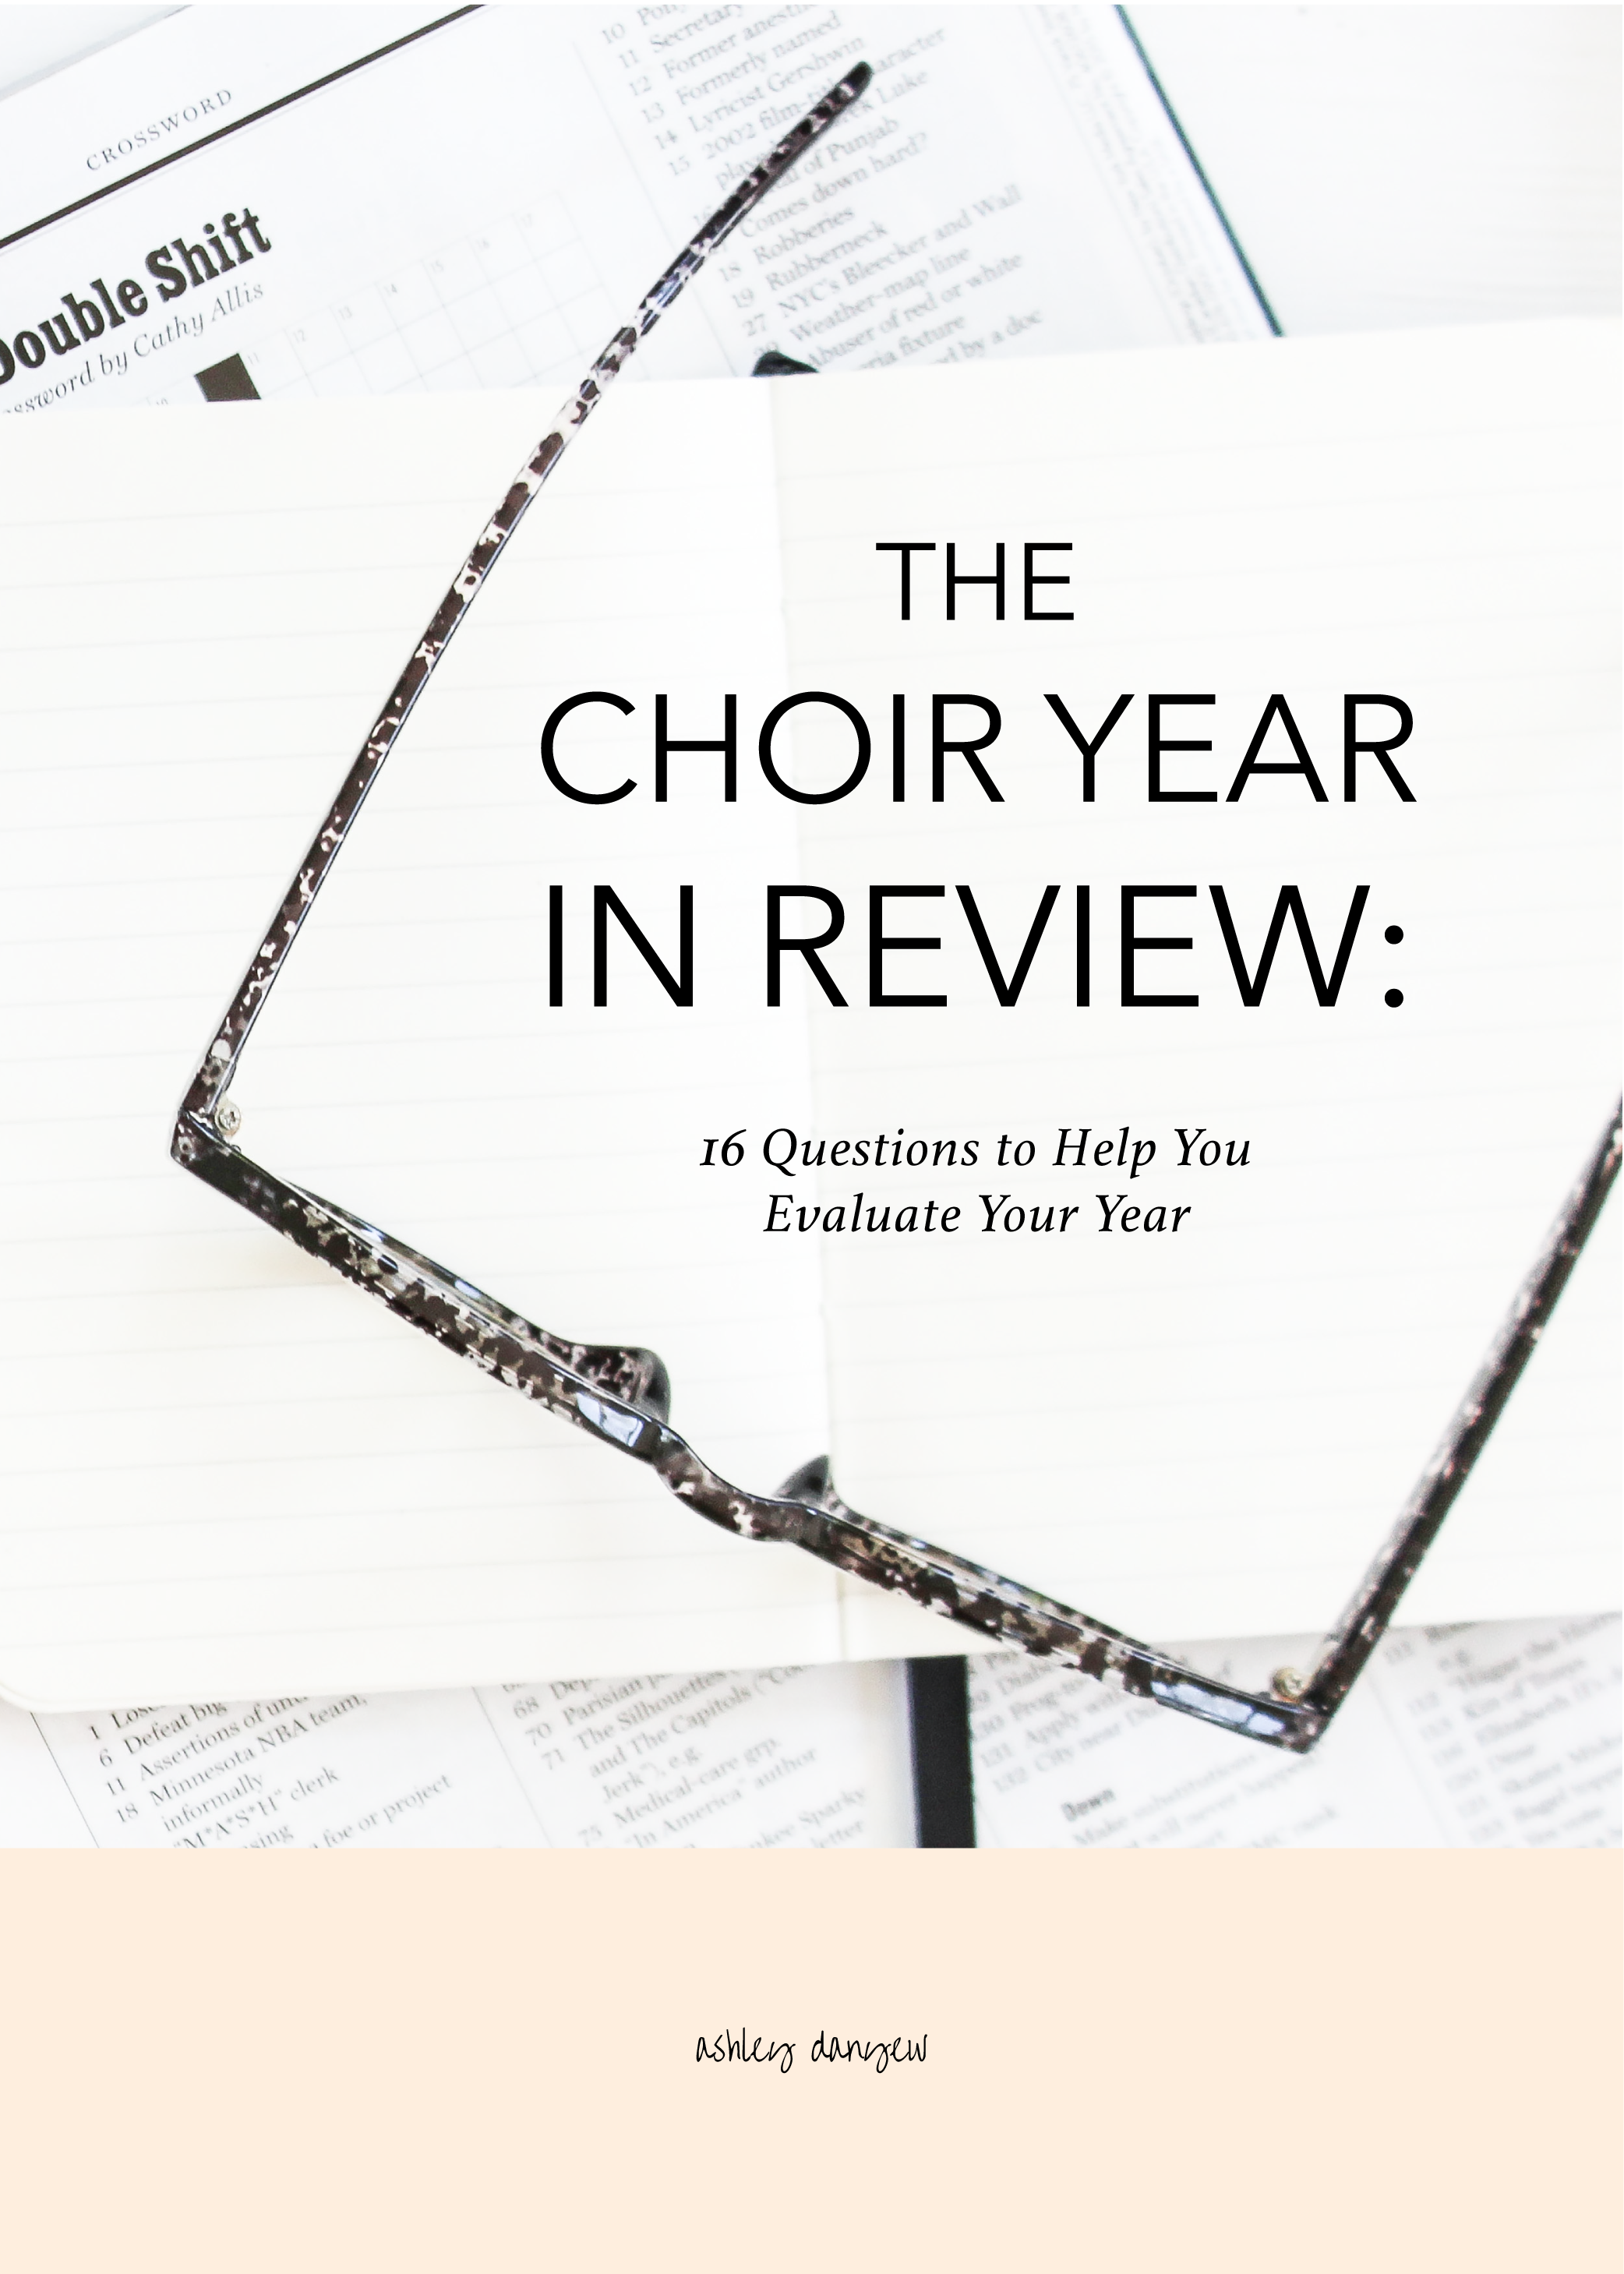 Copy of The Choir Year in Review: 16 Questions to Help You Evaluate Your Year